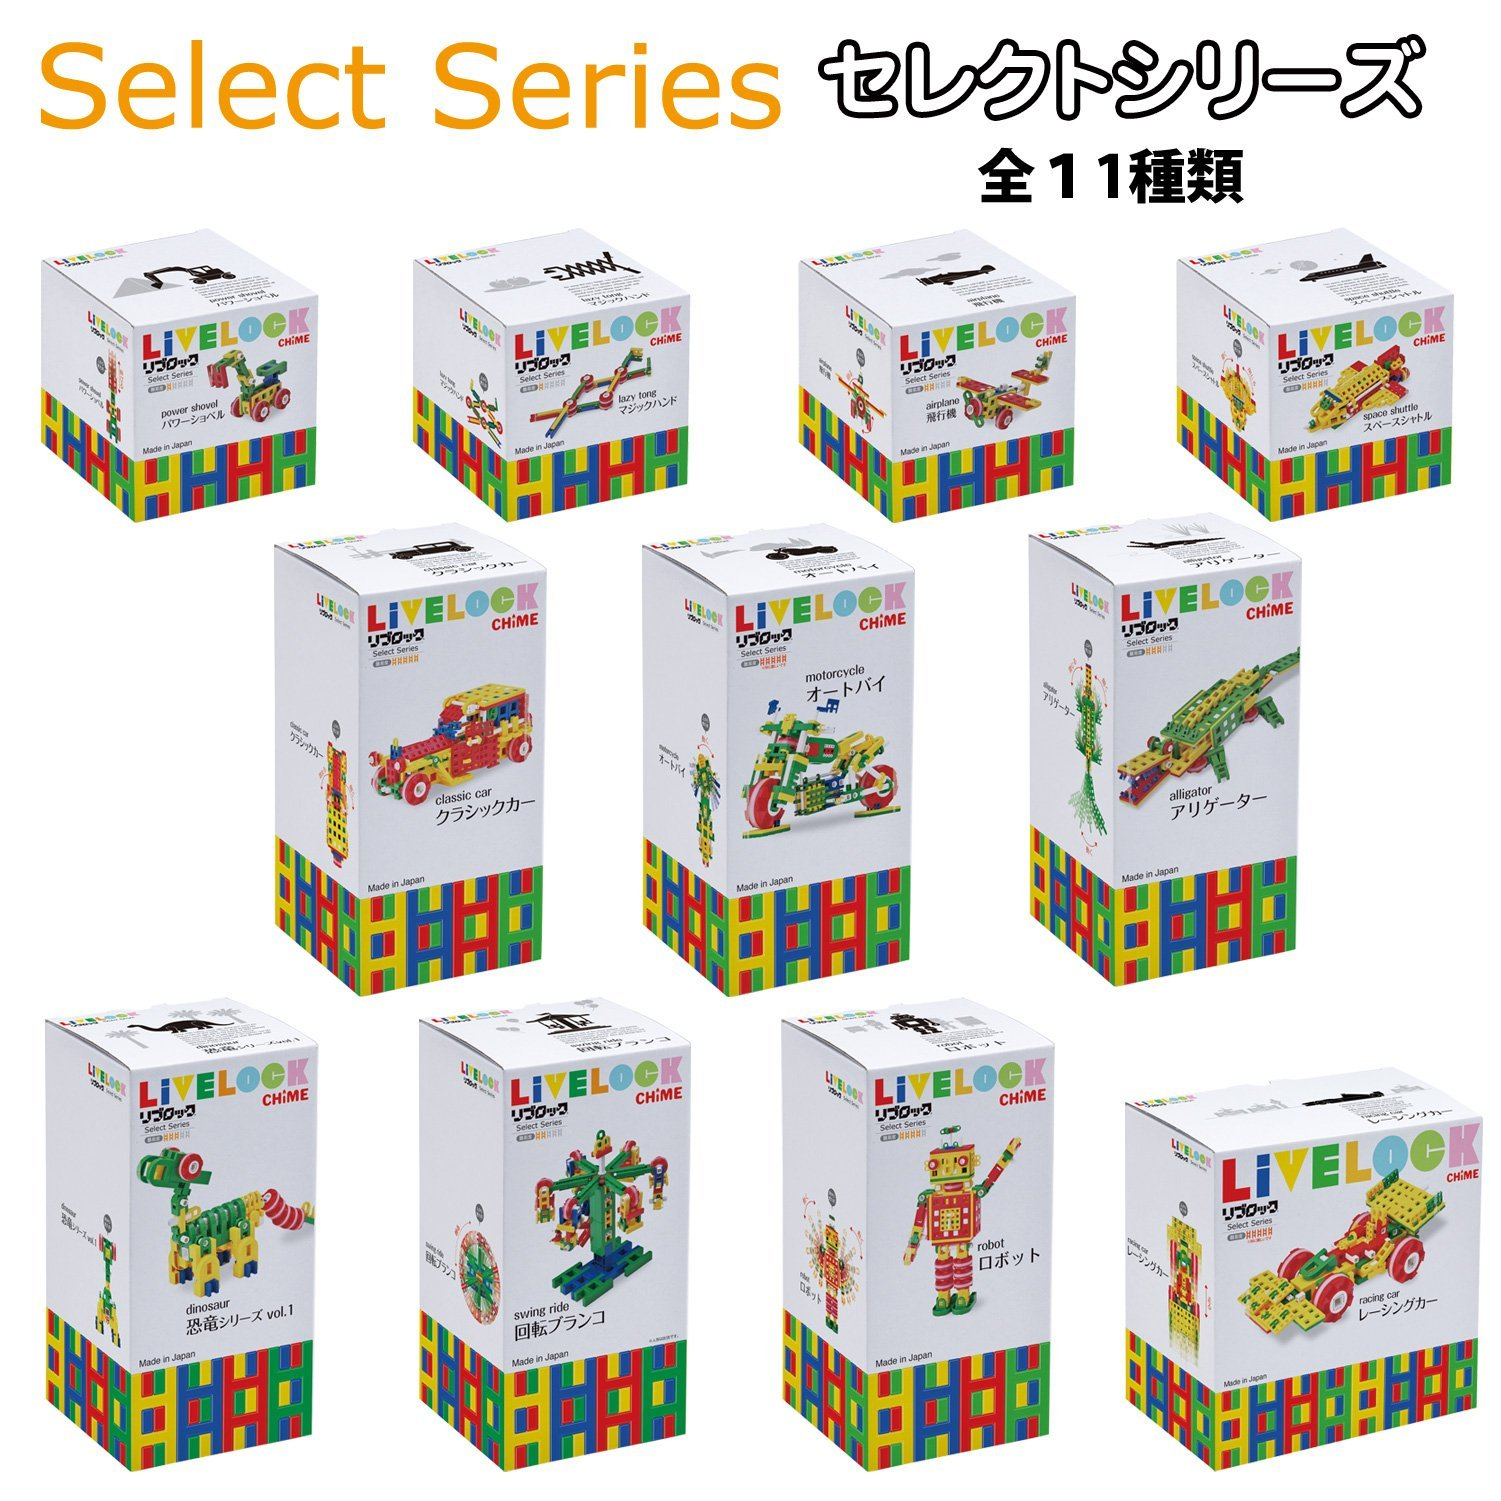 Li block select series robot (japan import) by Book loan by Book loan (Image #5)